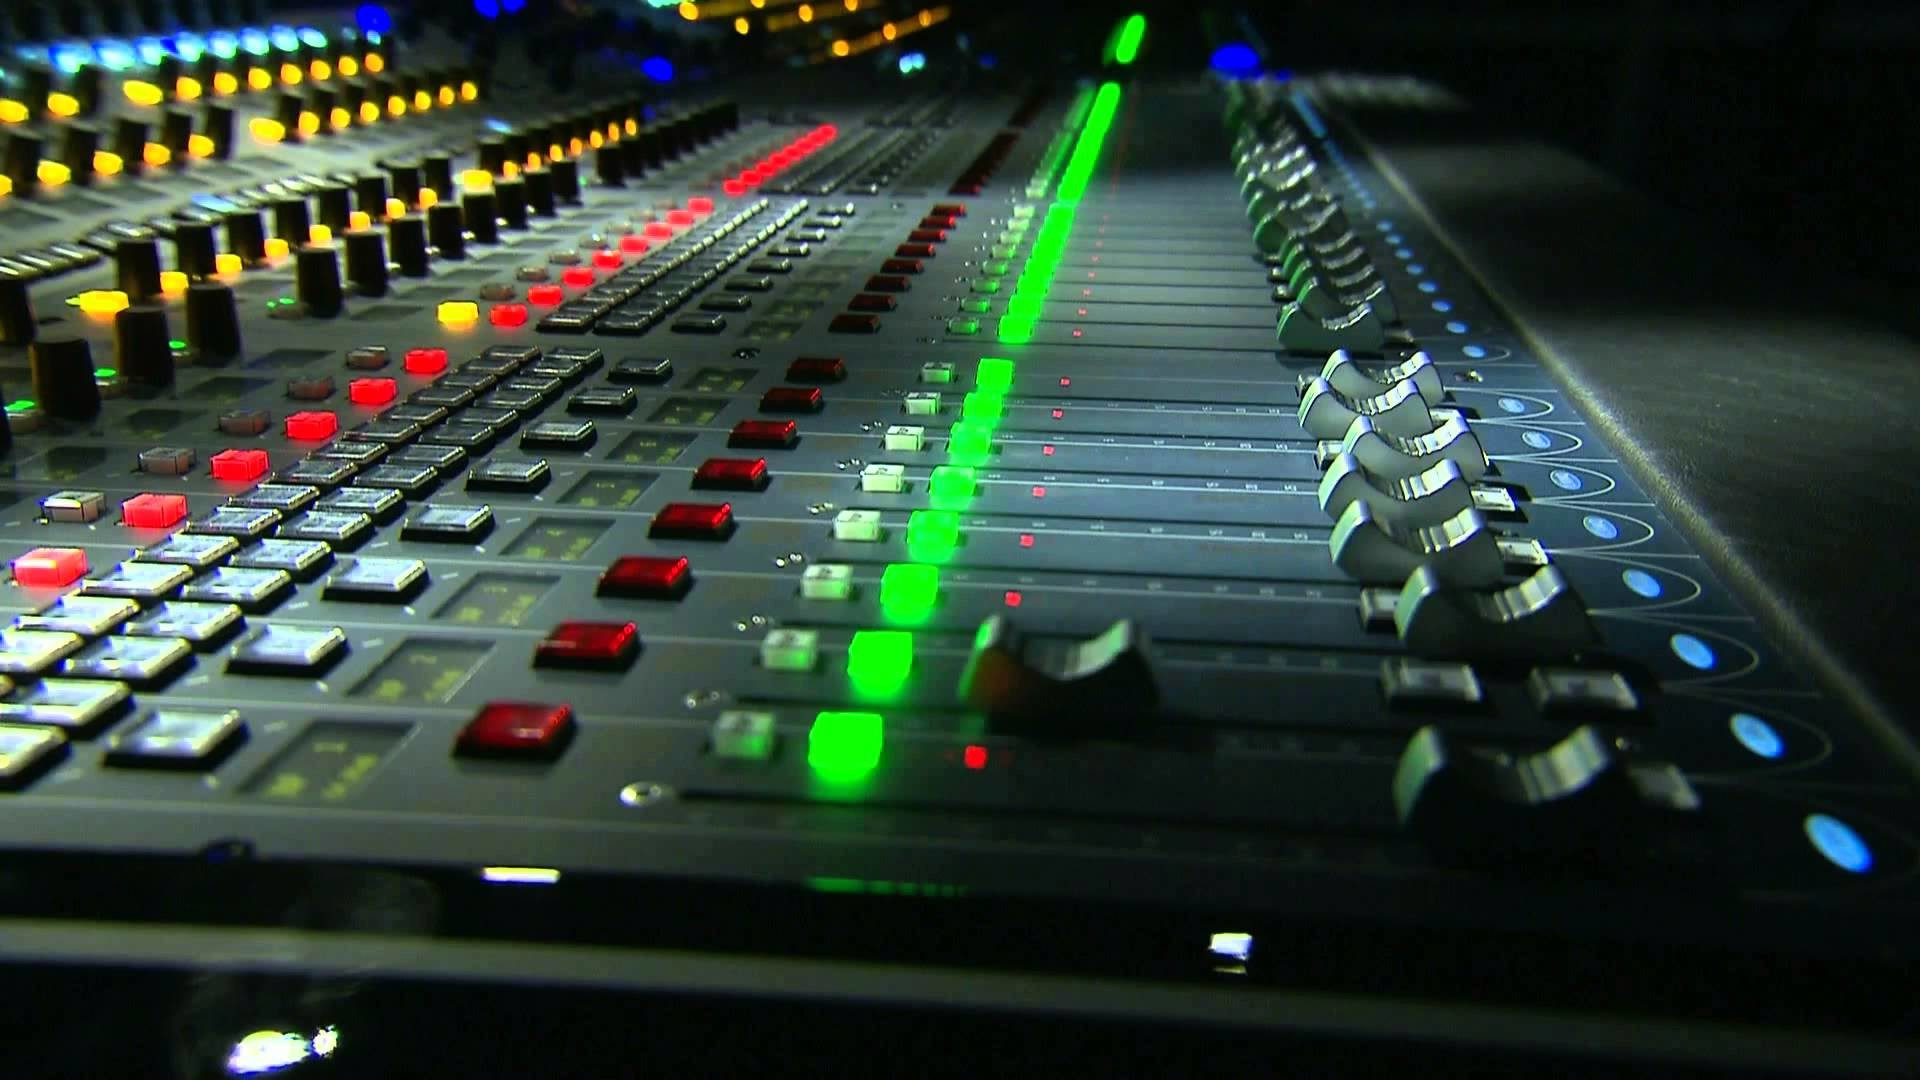 1920x1080 Technology Wallpaper #44 Recording Studio Wallpaper - WallpaperSafari ...